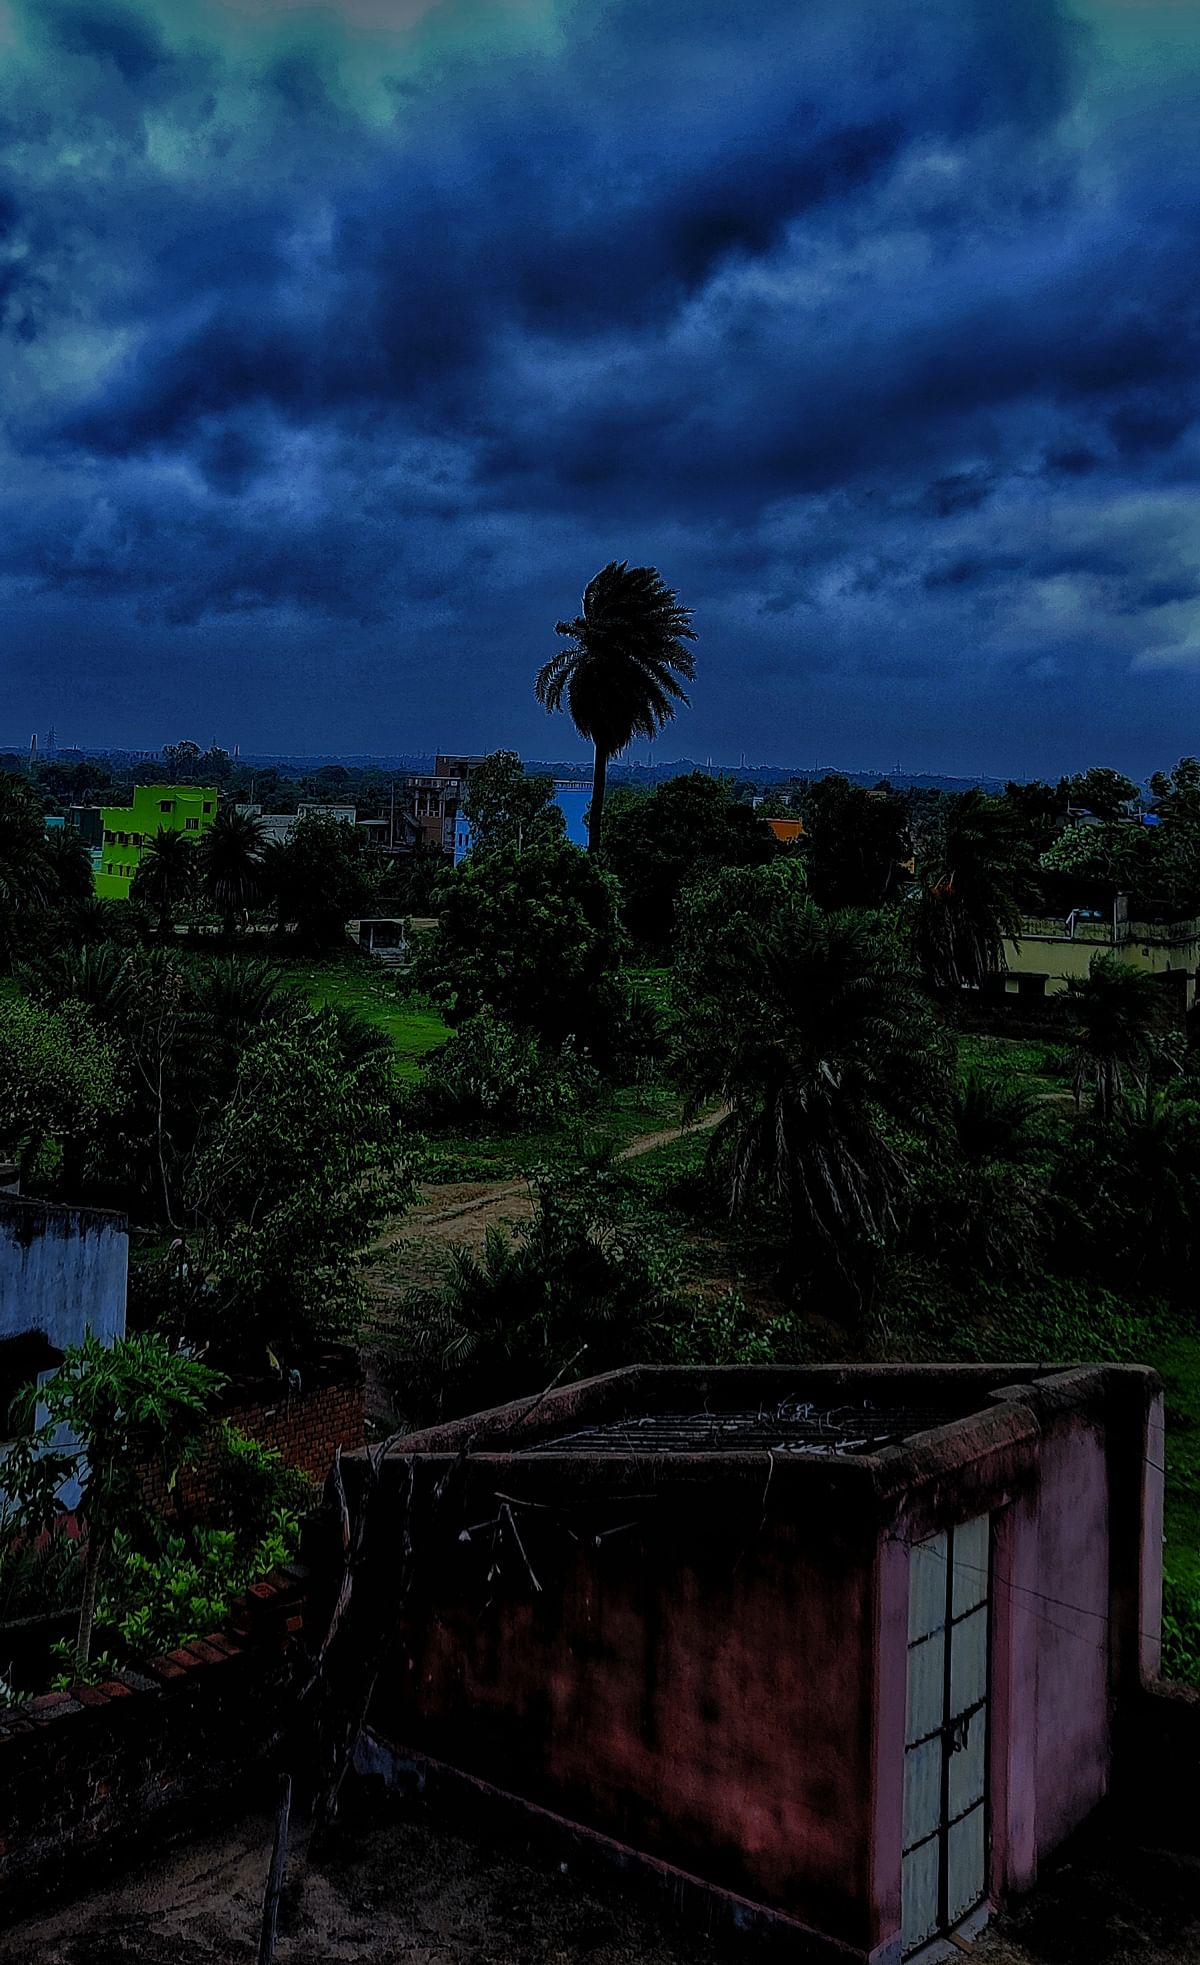 Strong winds blowing at 50-60 kmph has created panic amongst locals in Raghunathpur.